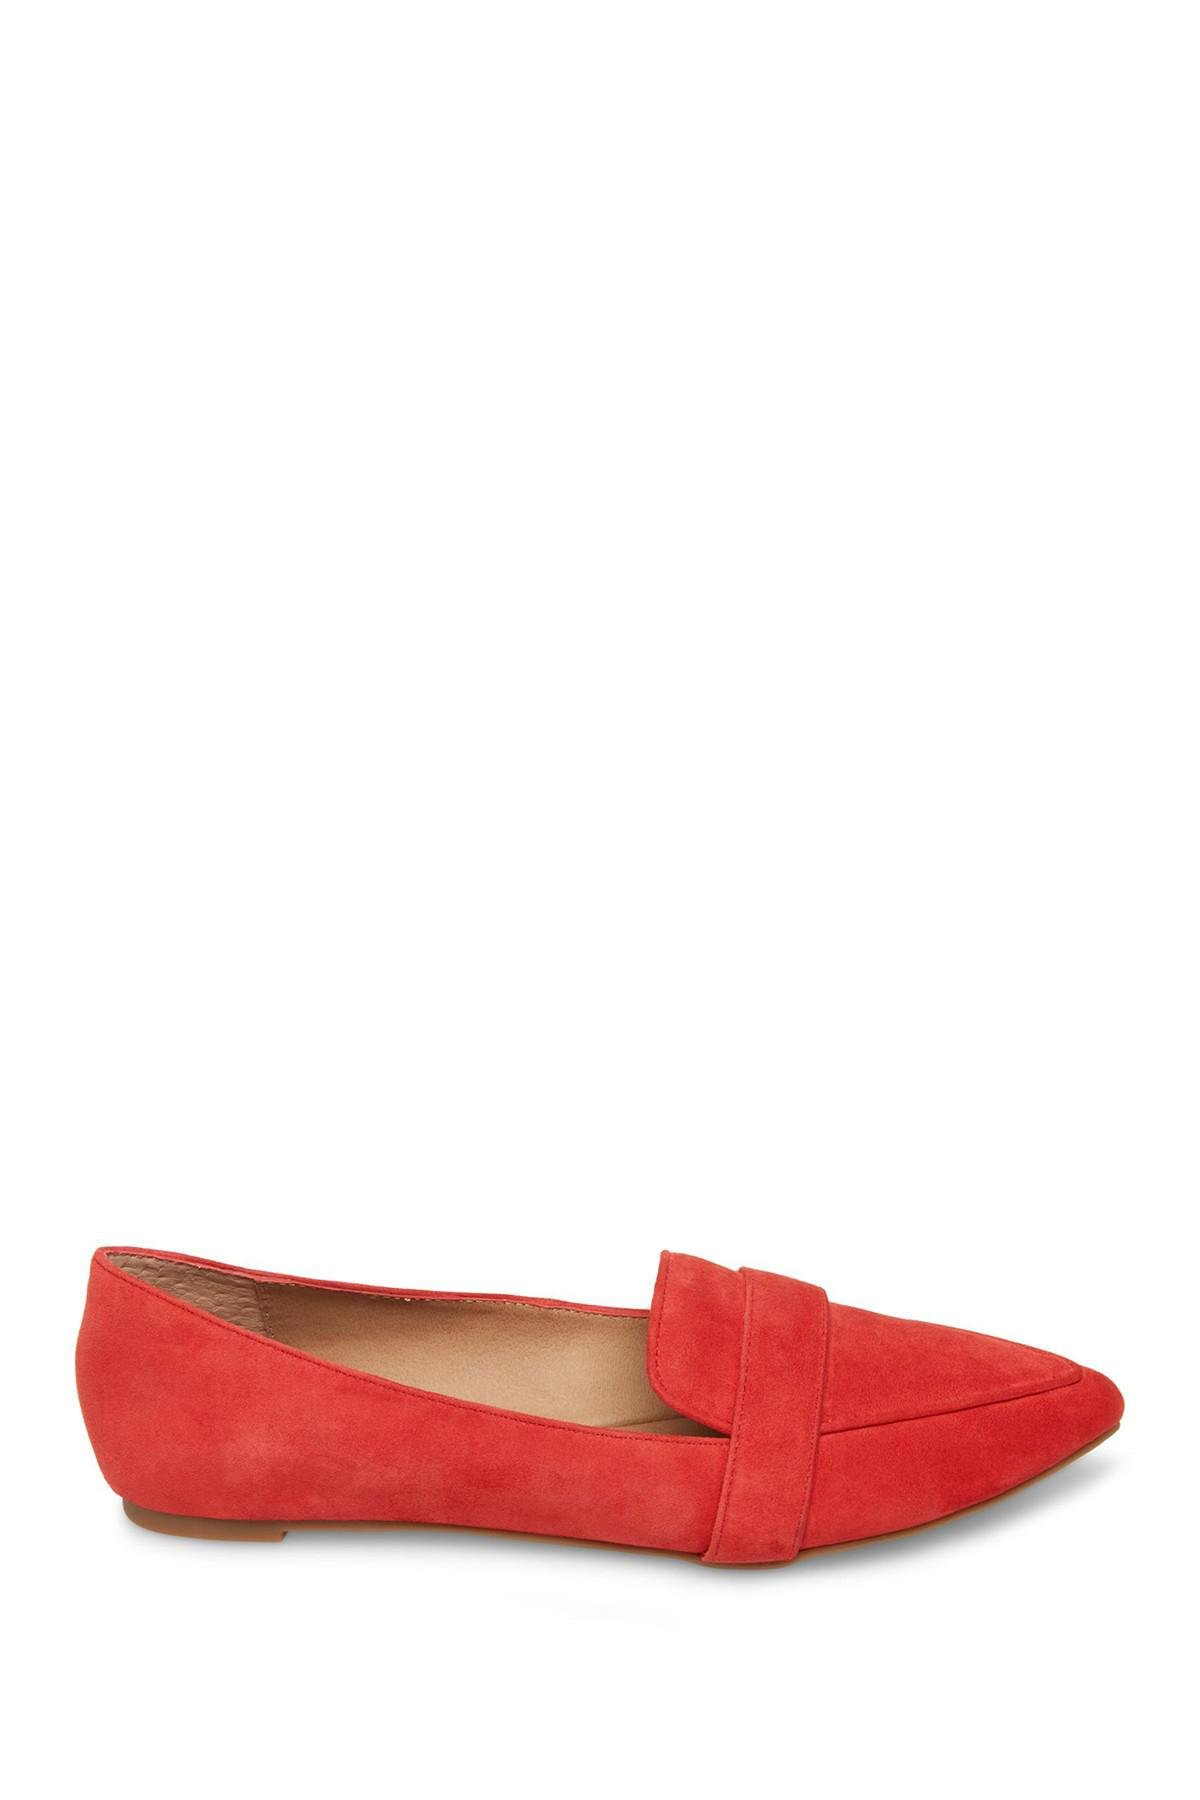 006a4a2bea3 Steve Madden - Red Jainna Suede Penny Loafer - Lyst. View fullscreen